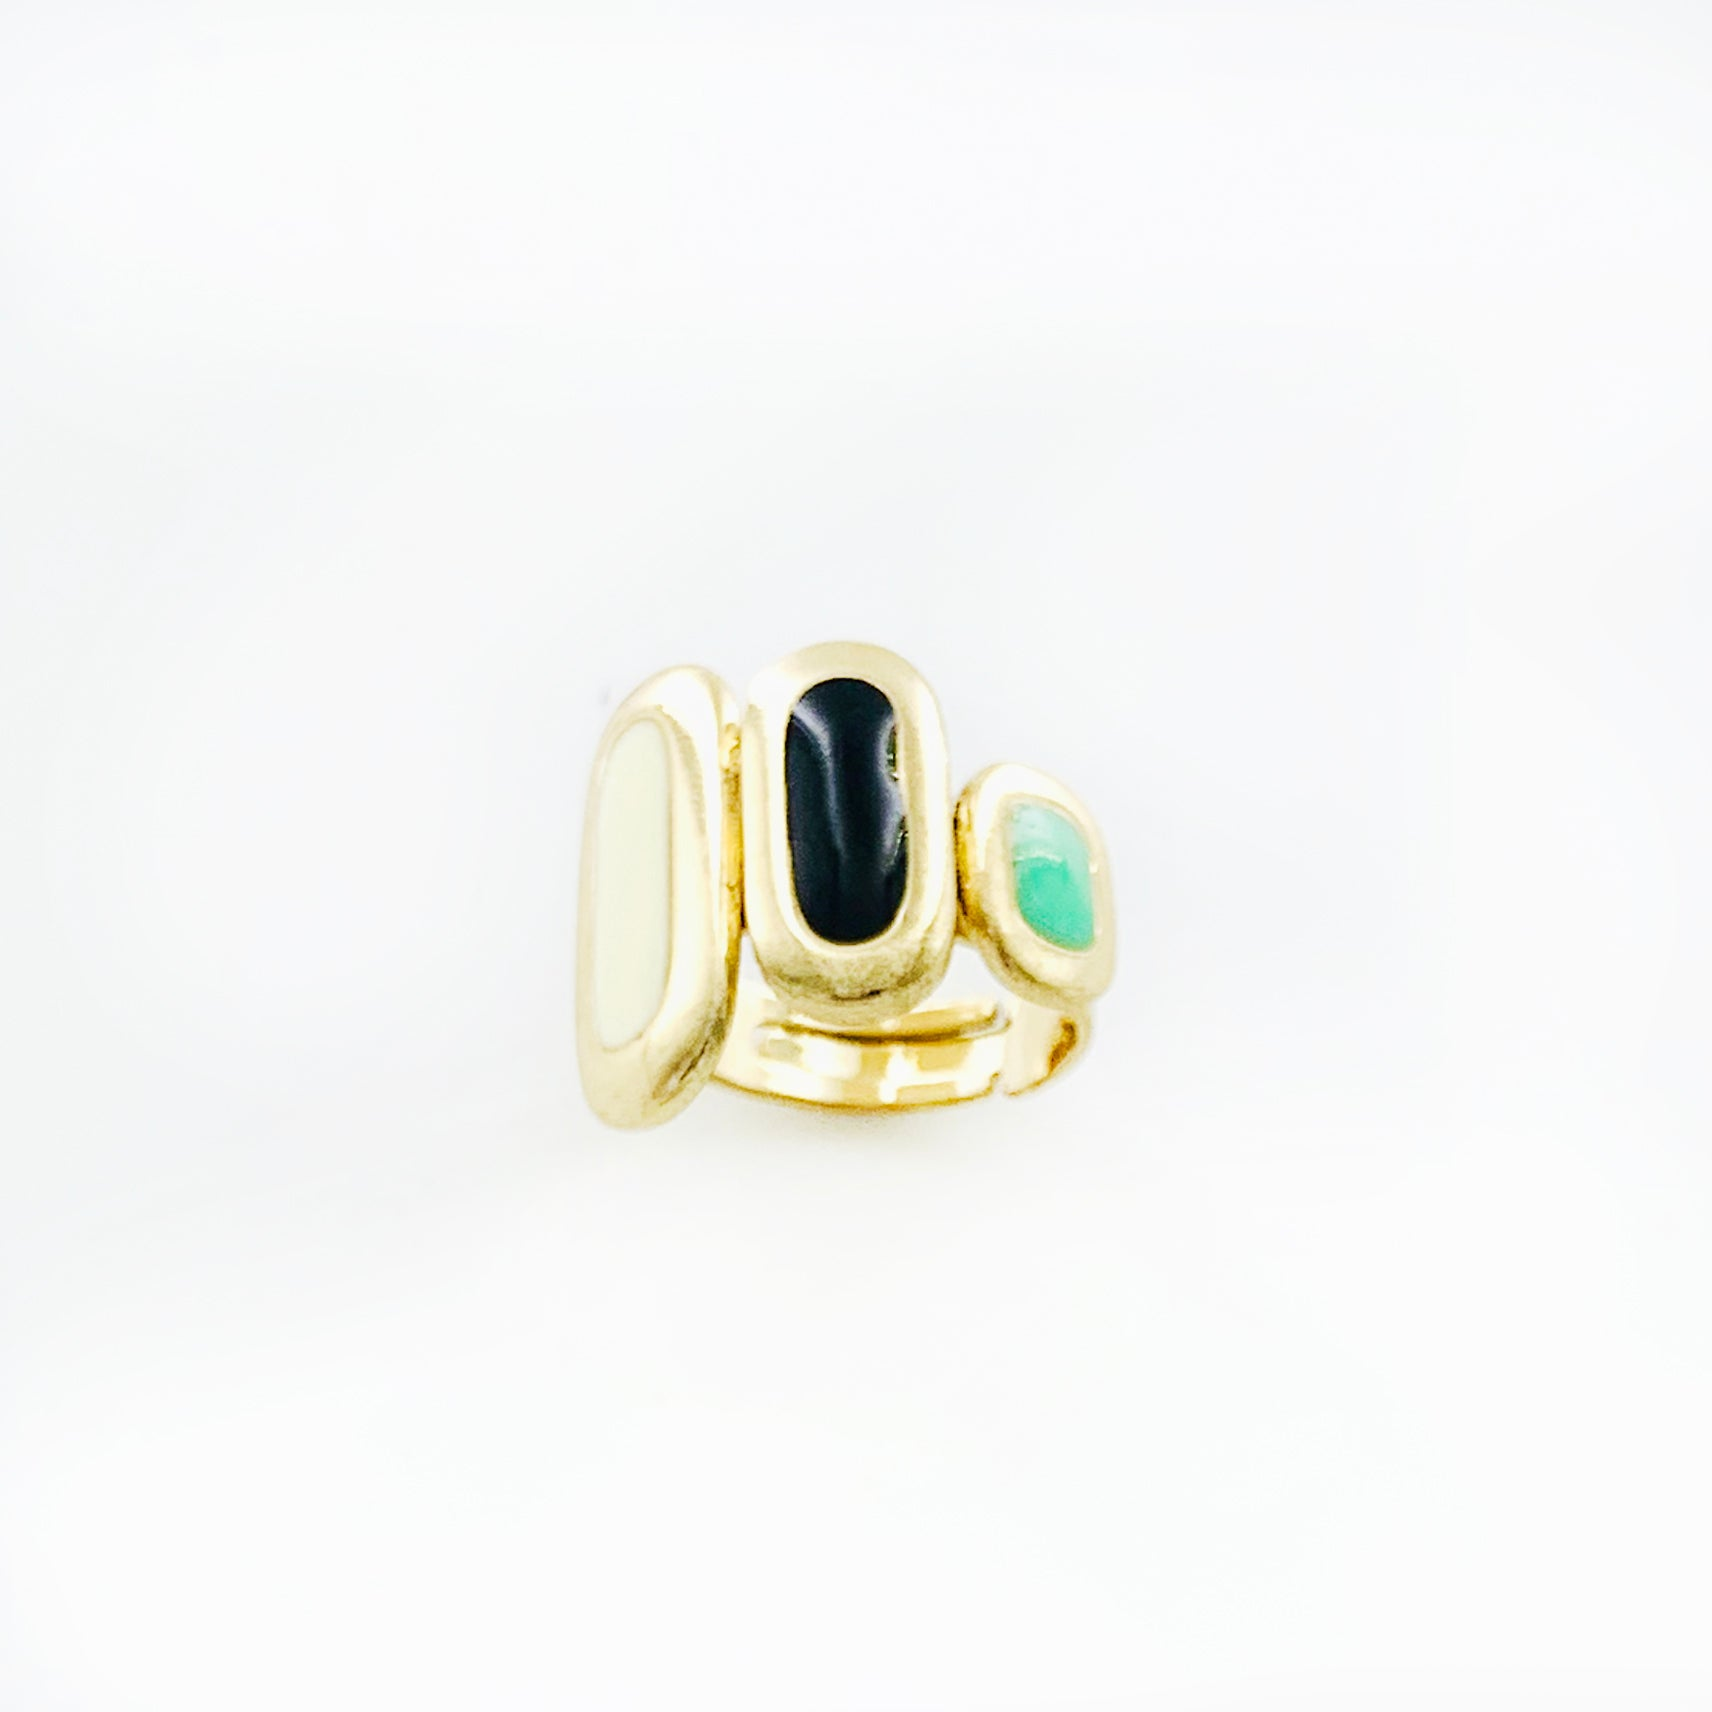 Gold ring with black, turquoise and white